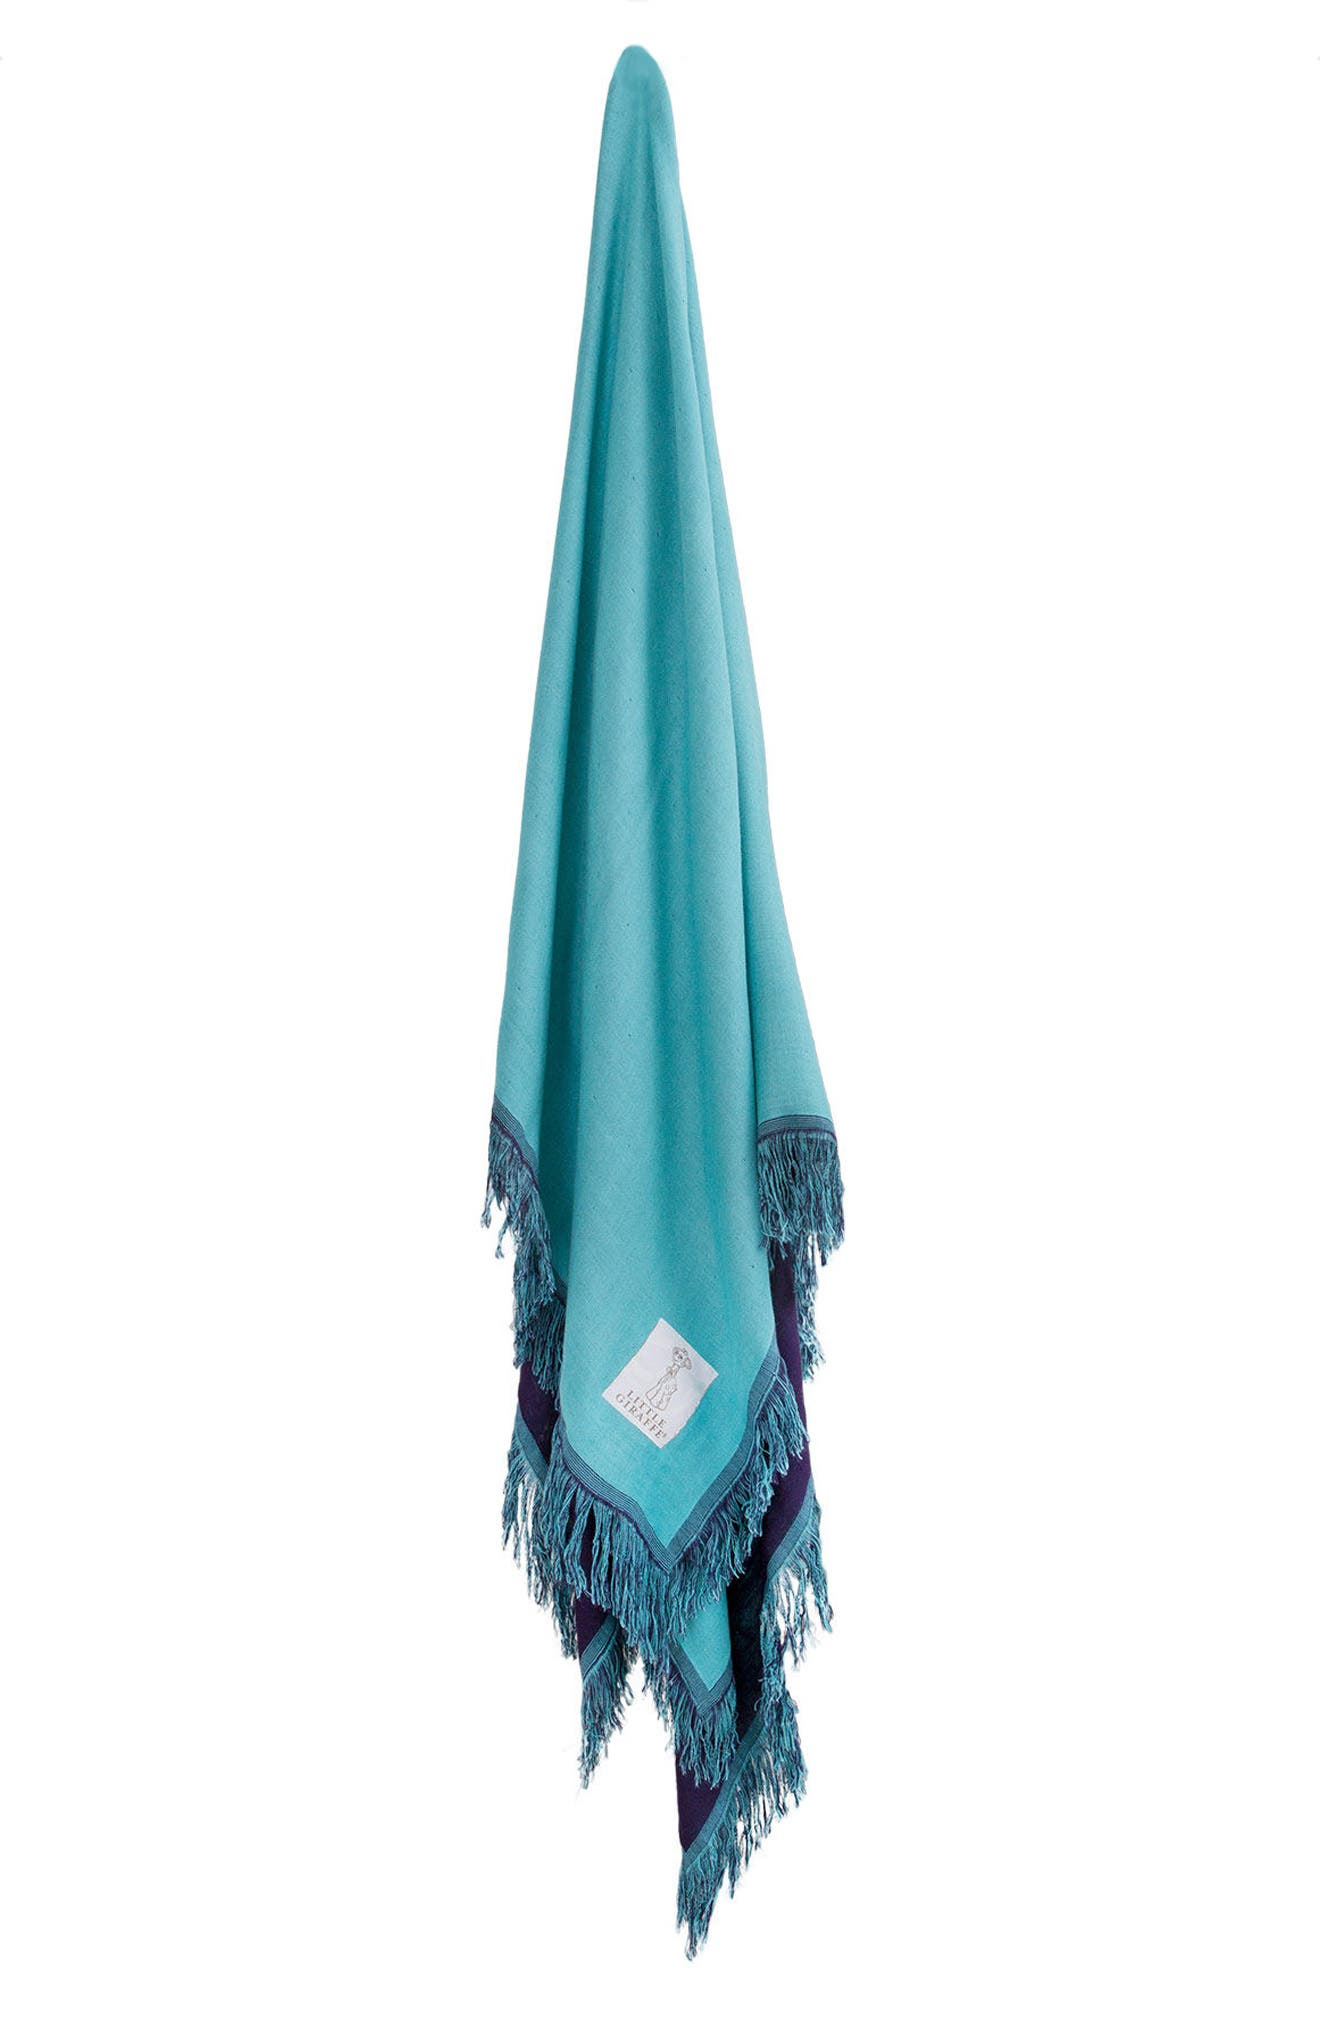 Marrakech Fringe Blanket,                             Main thumbnail 1, color,                             DENIM/ TEAL